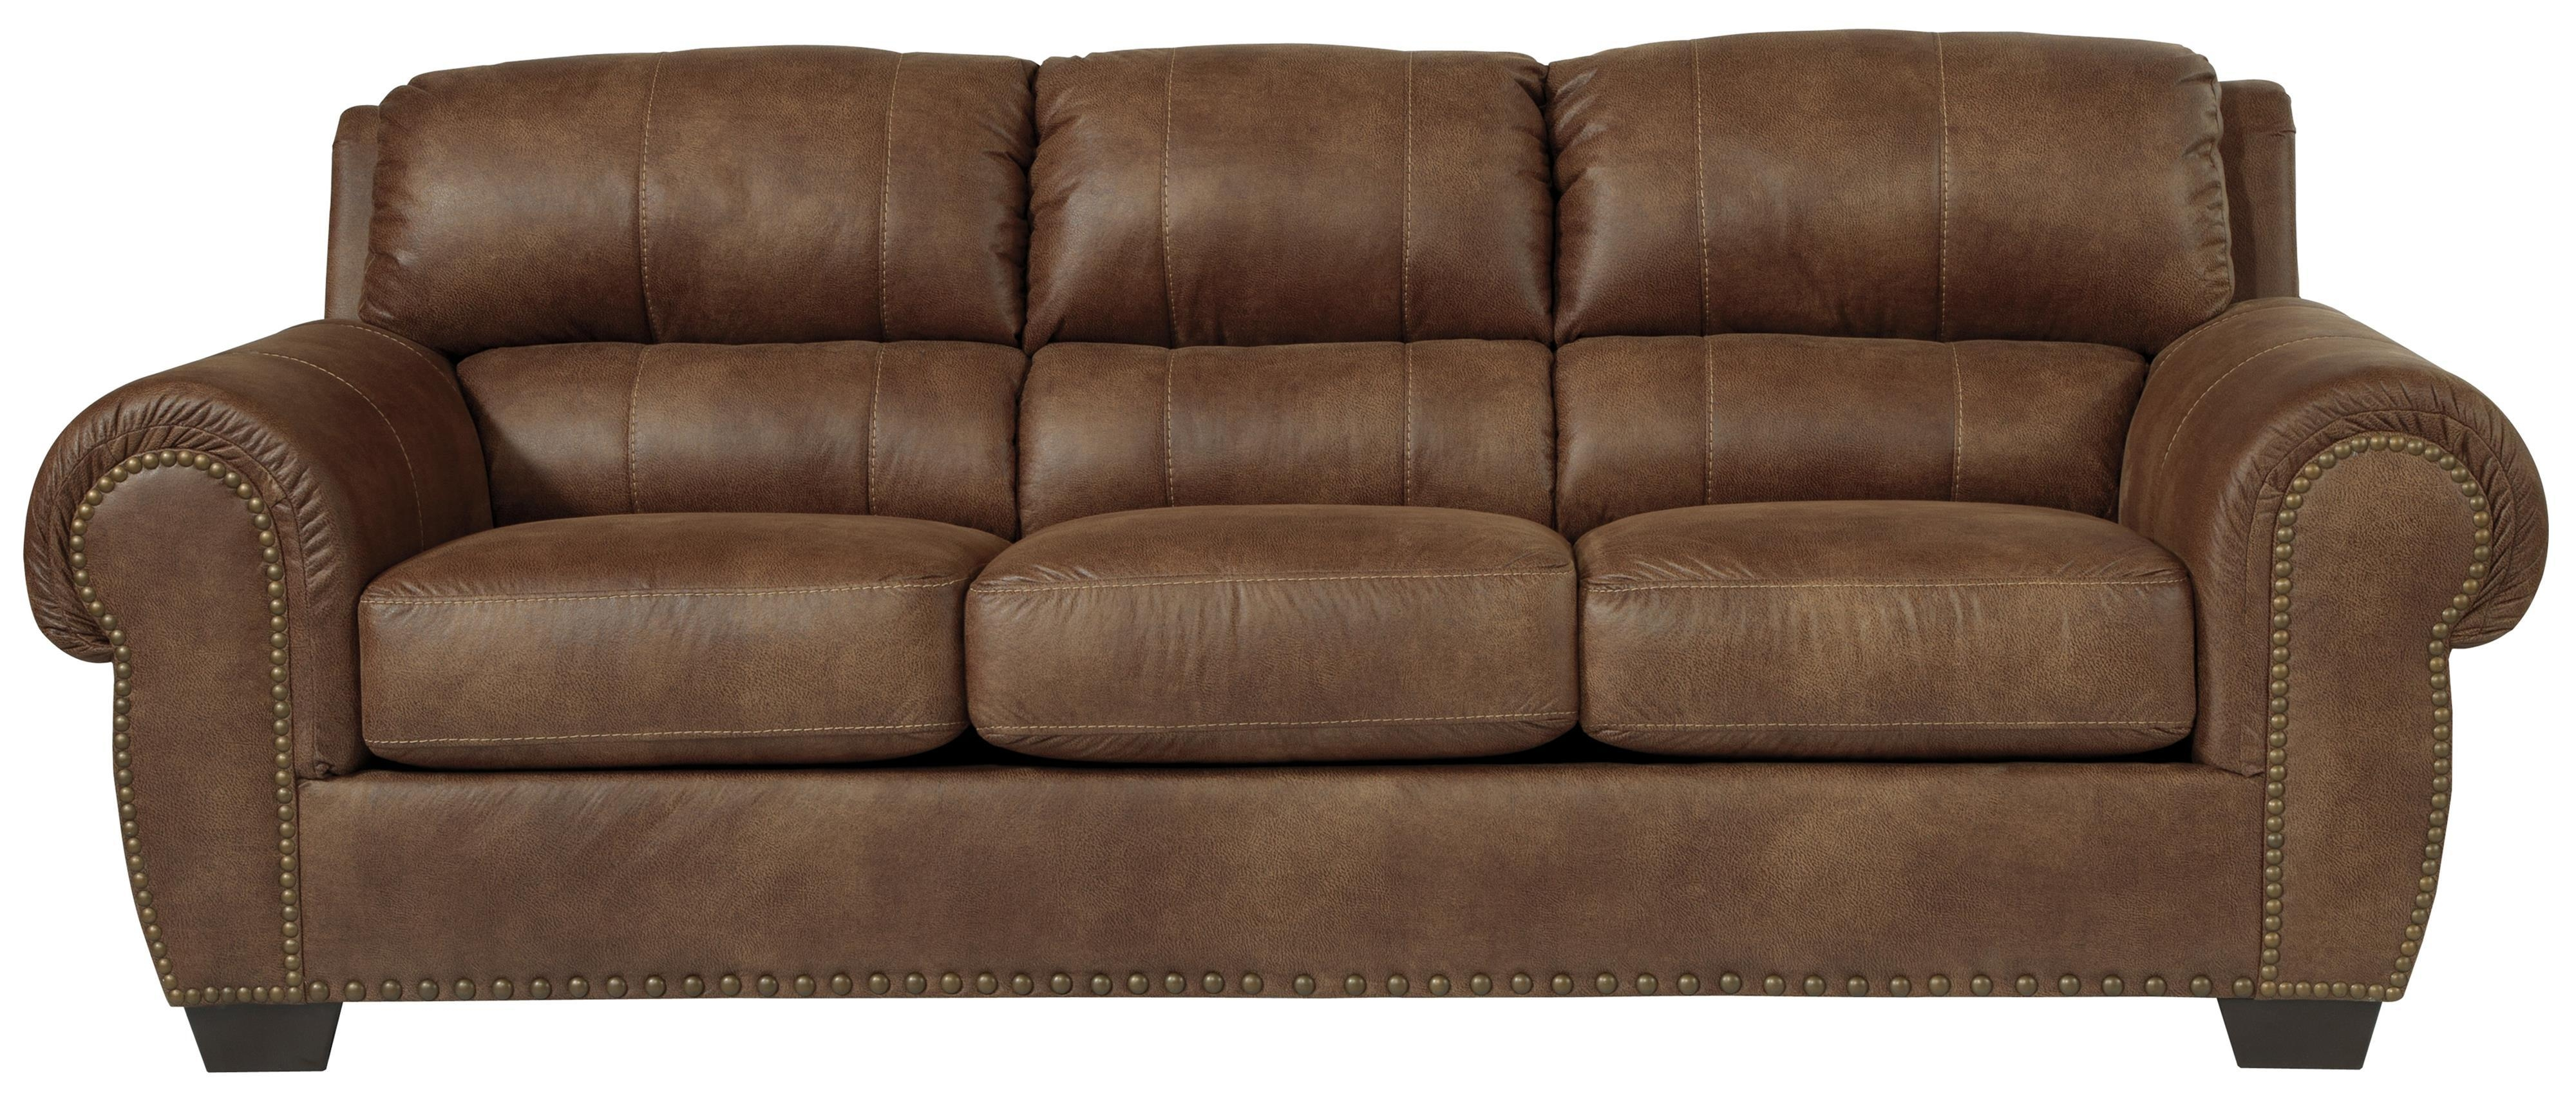 Transitional Faux Leather Sofa With Rolled Arms & Nailhead Trim With Regard To Benchcraft Leather Sofas (Image 19 of 20)